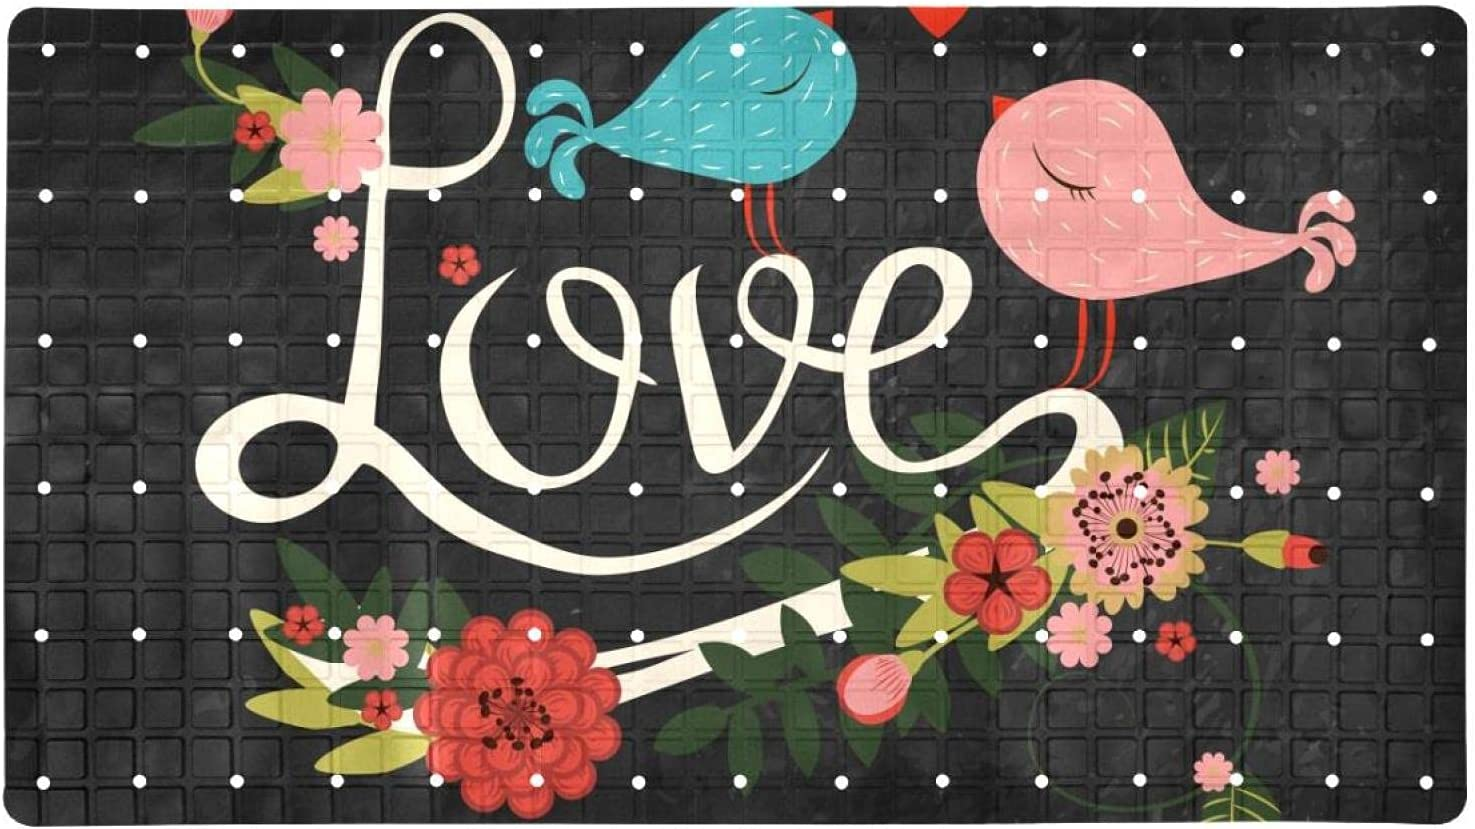 Bath Tub Shower Mat 15.7x27.9 inches with Text specialty shop Boston Mall Flor Love Doodles